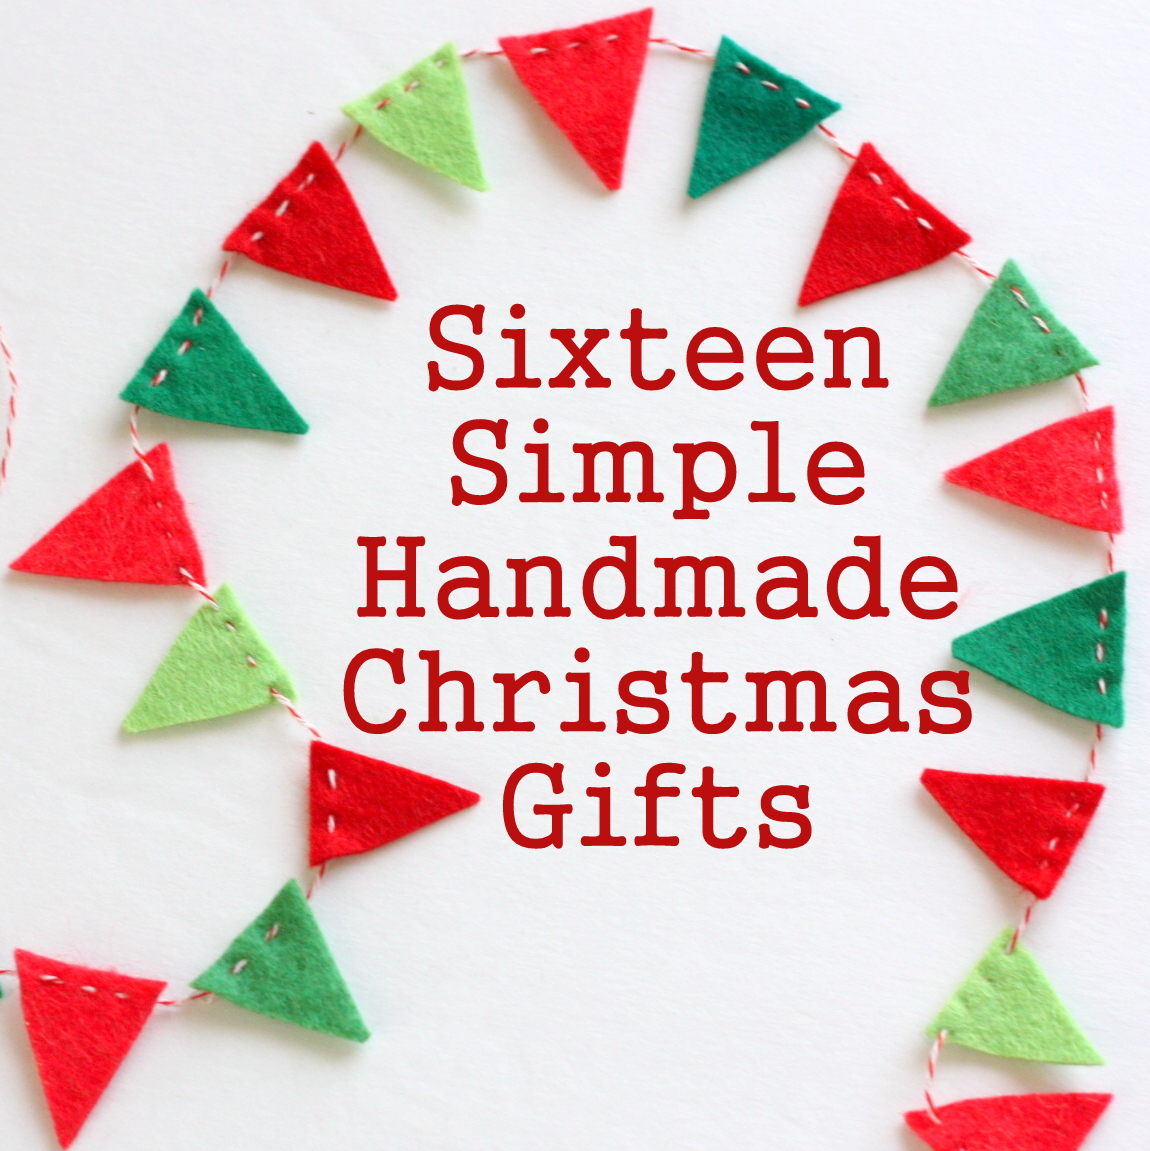 16 simple handmade christmas gift tutorials - Xmas Presents